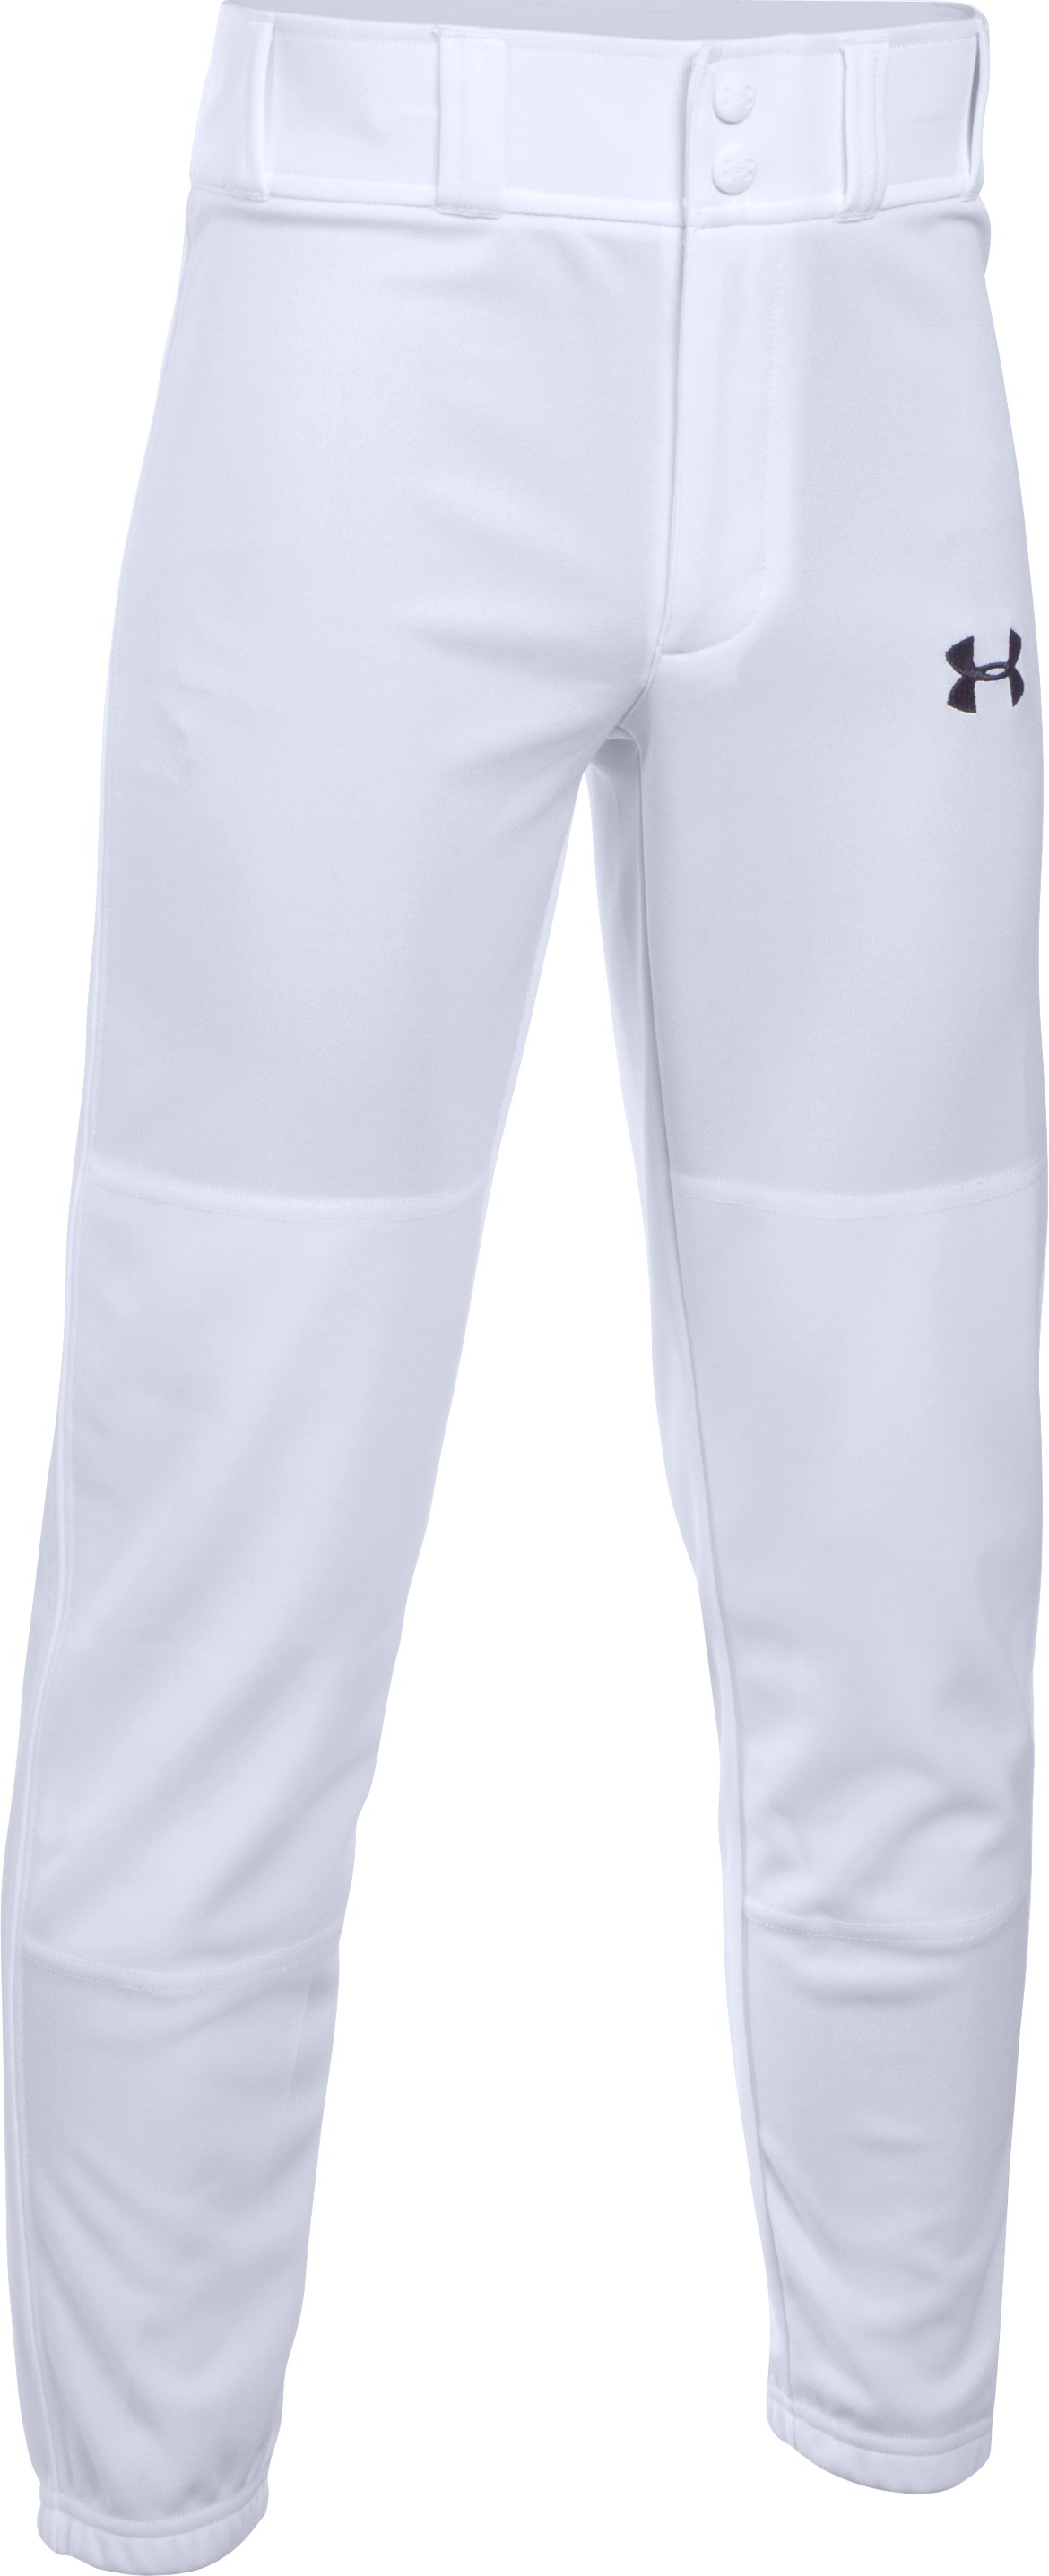 Boys' UA Closed Bottom Clean Up Pants, White, zoomed image